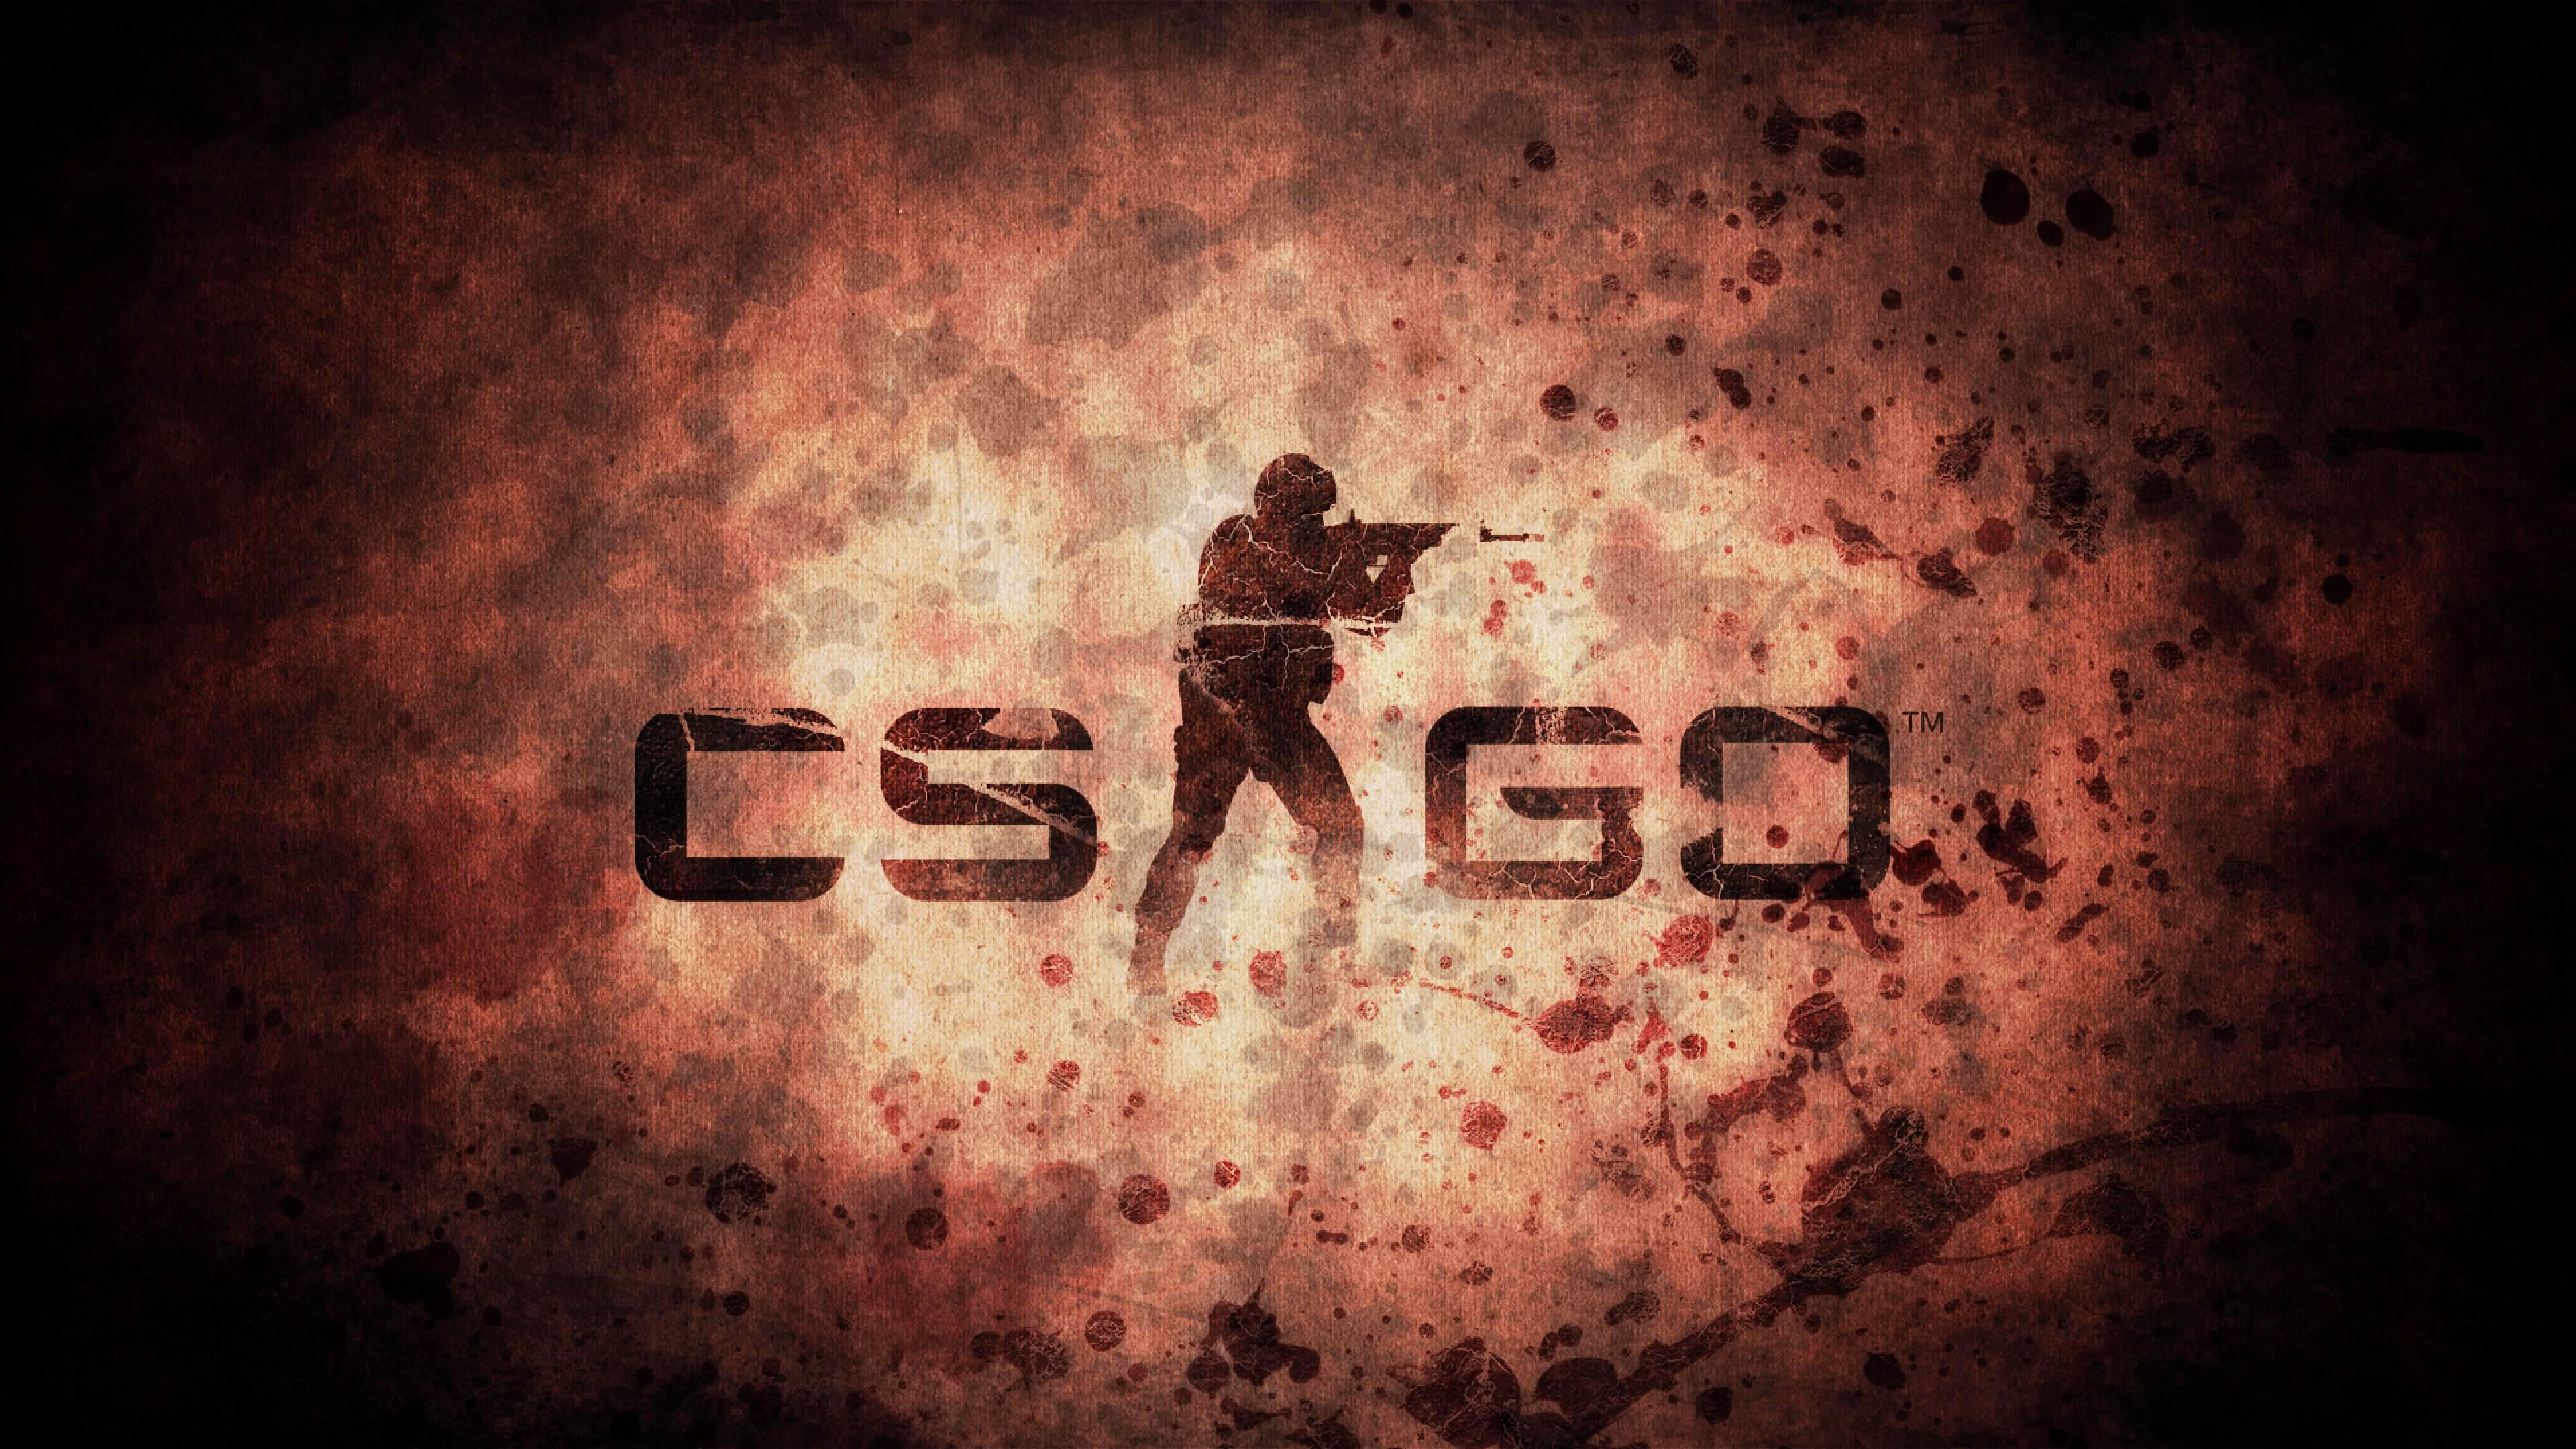 4k Cs Go Wallpapers Wallpaper Cave